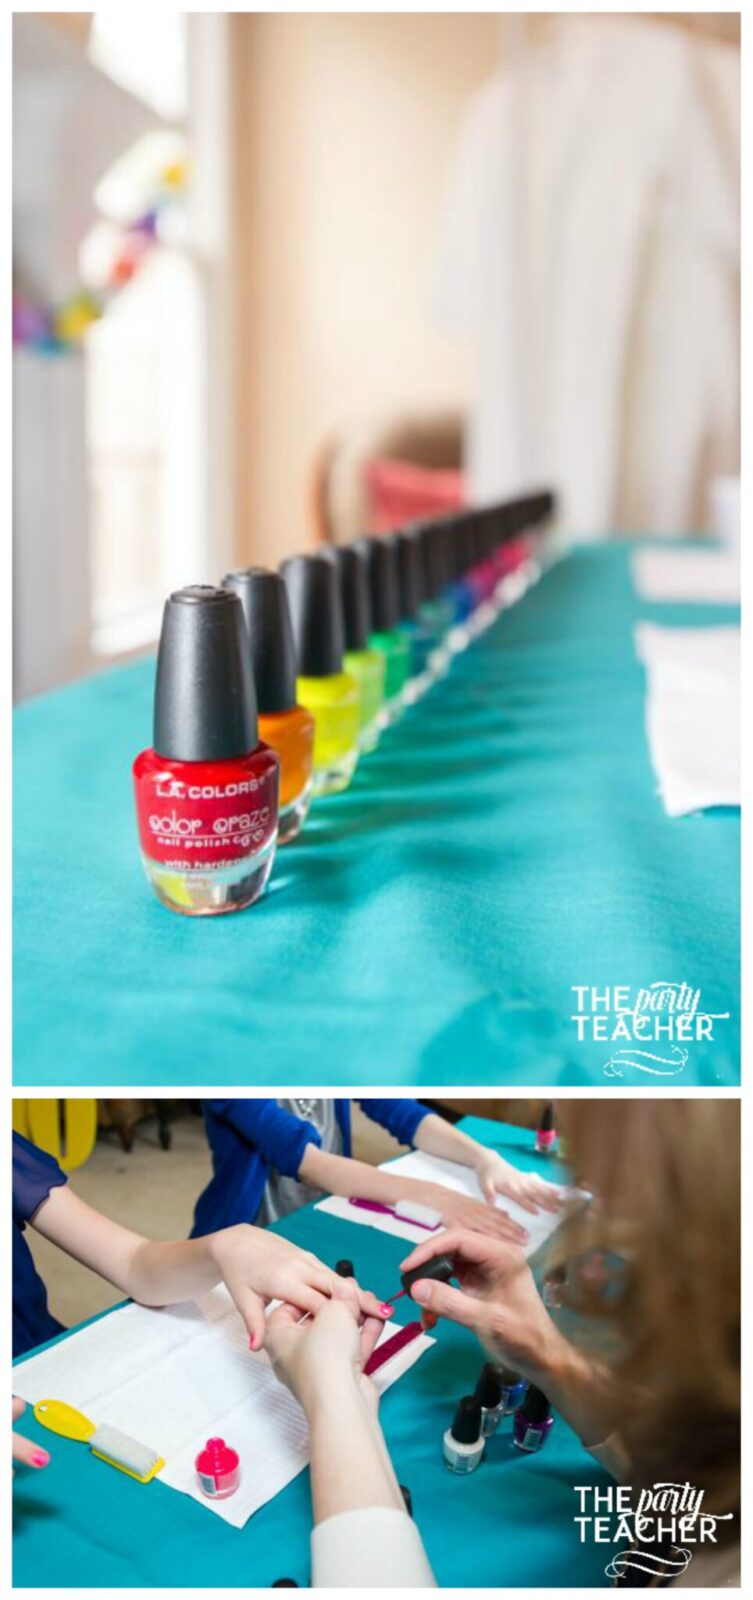 Twins Top Ten Nail Polish Station Collage by The Party Teacher